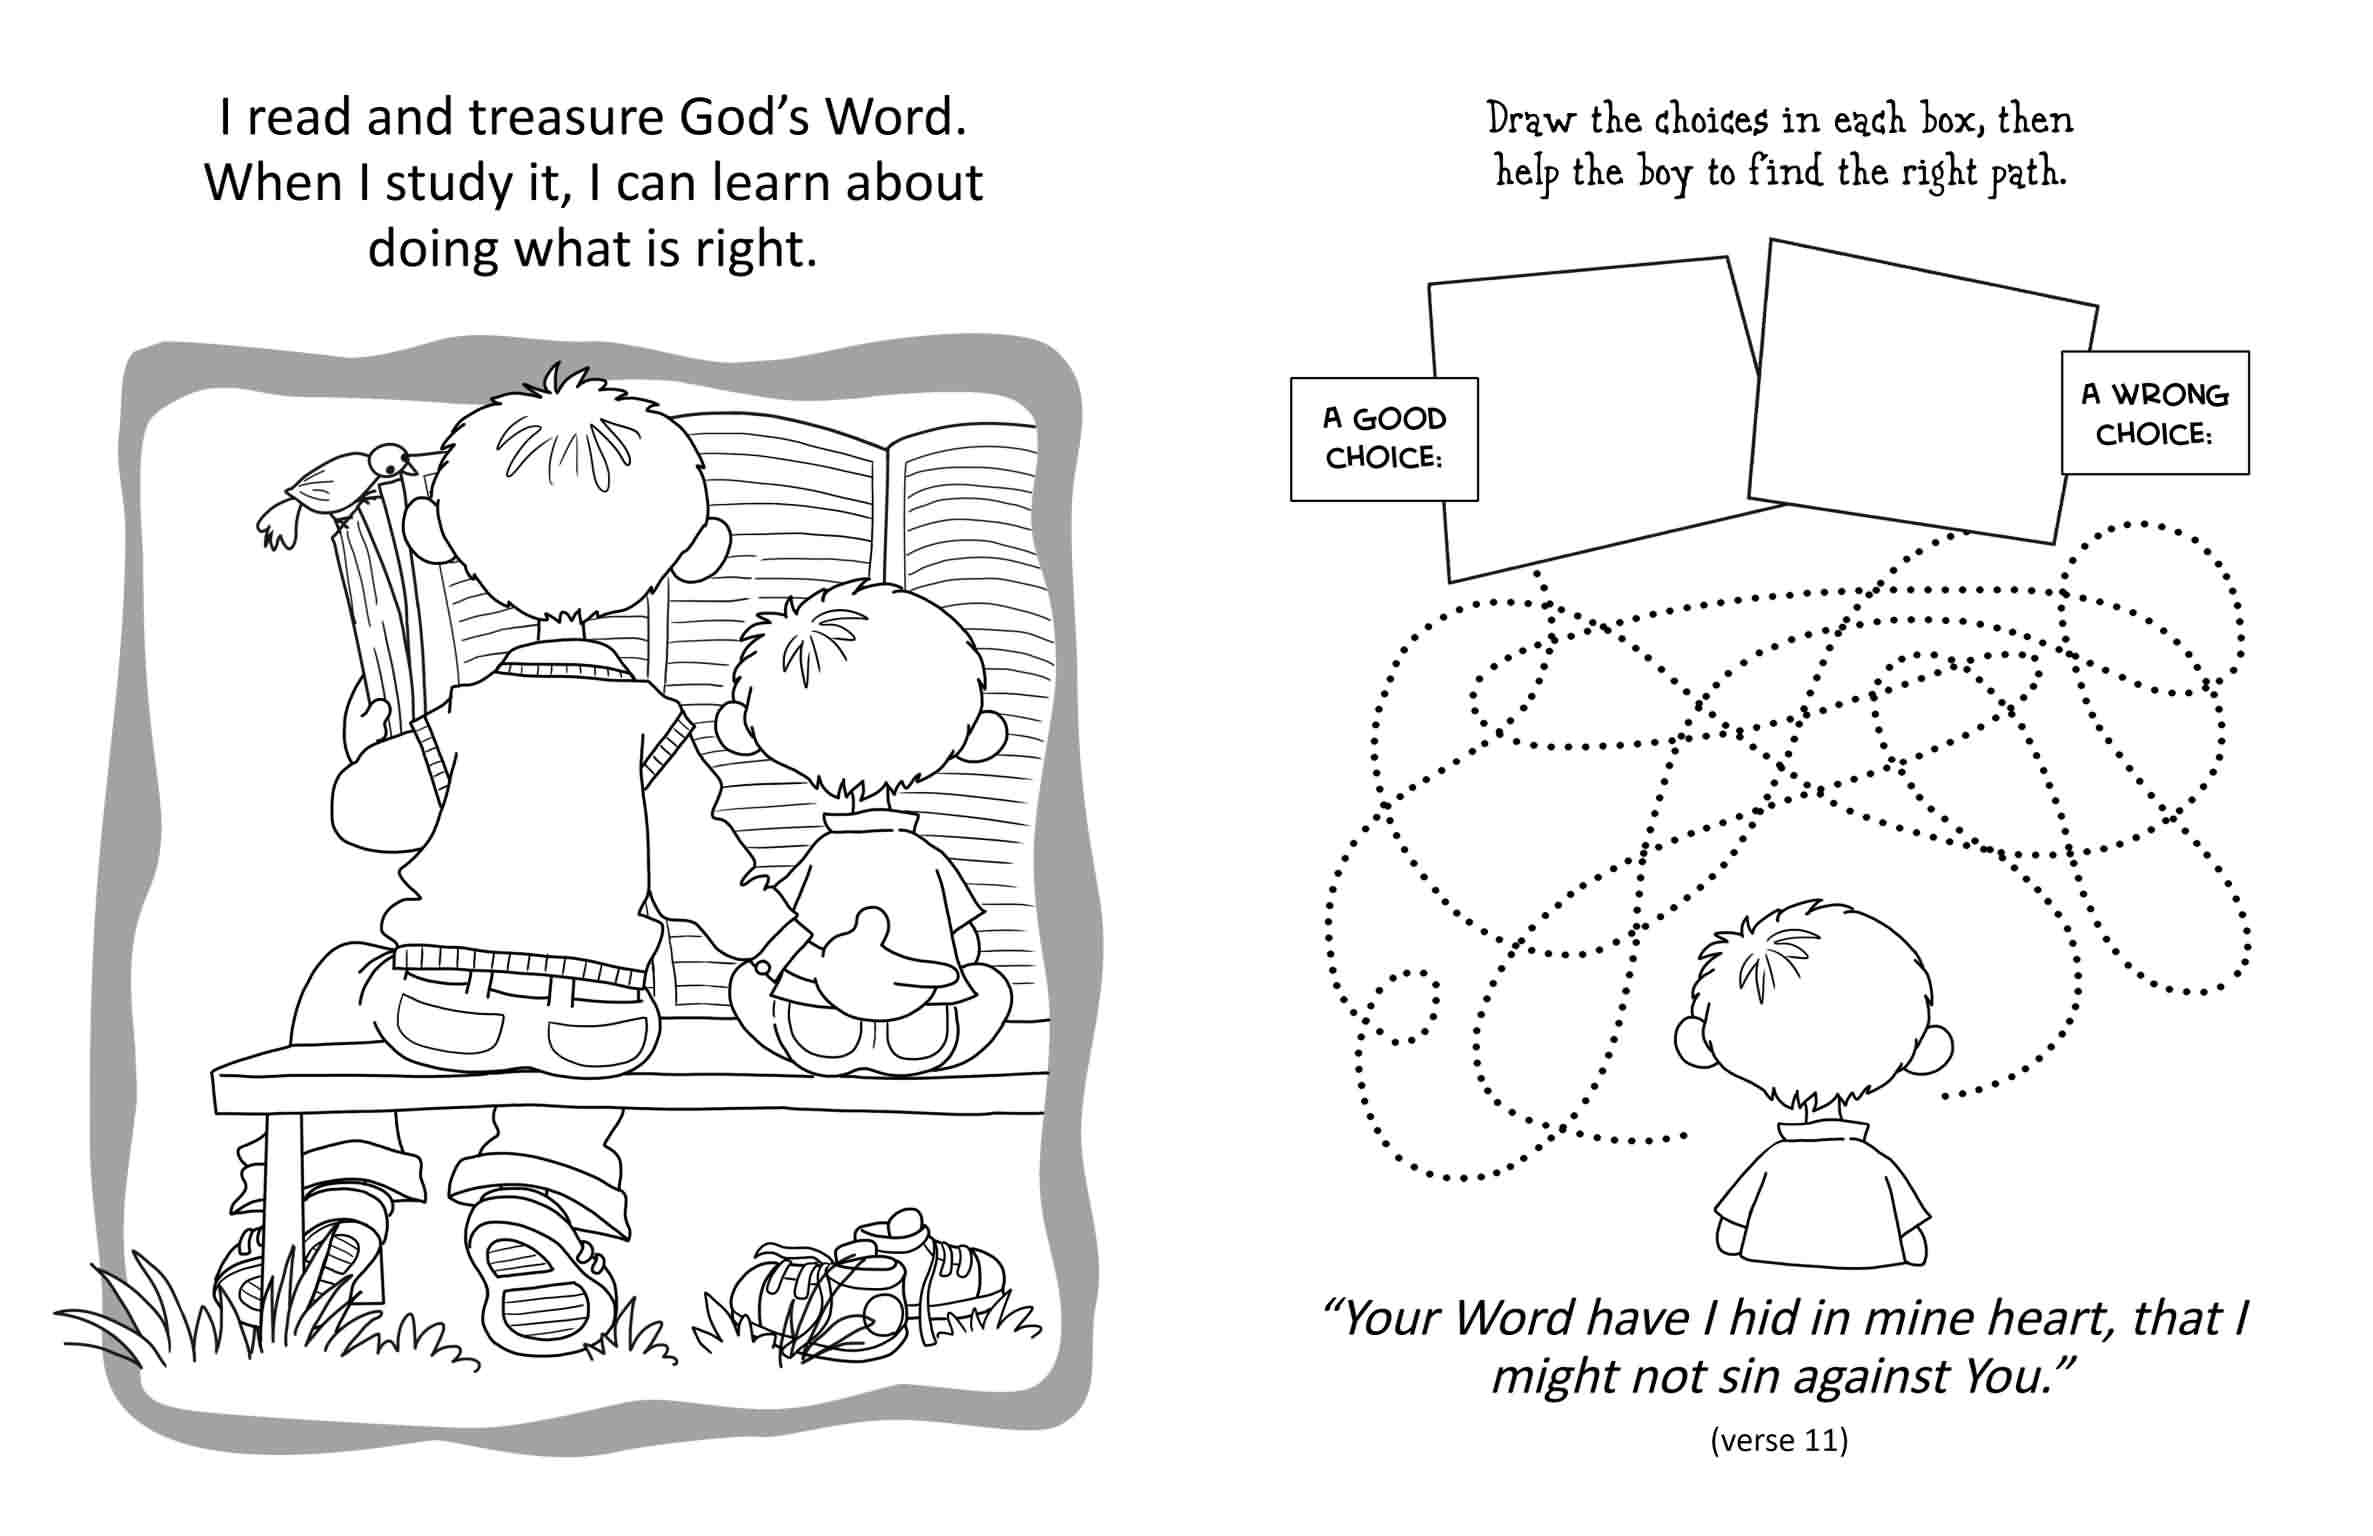 coloring pages for psalm 119 - photo#16